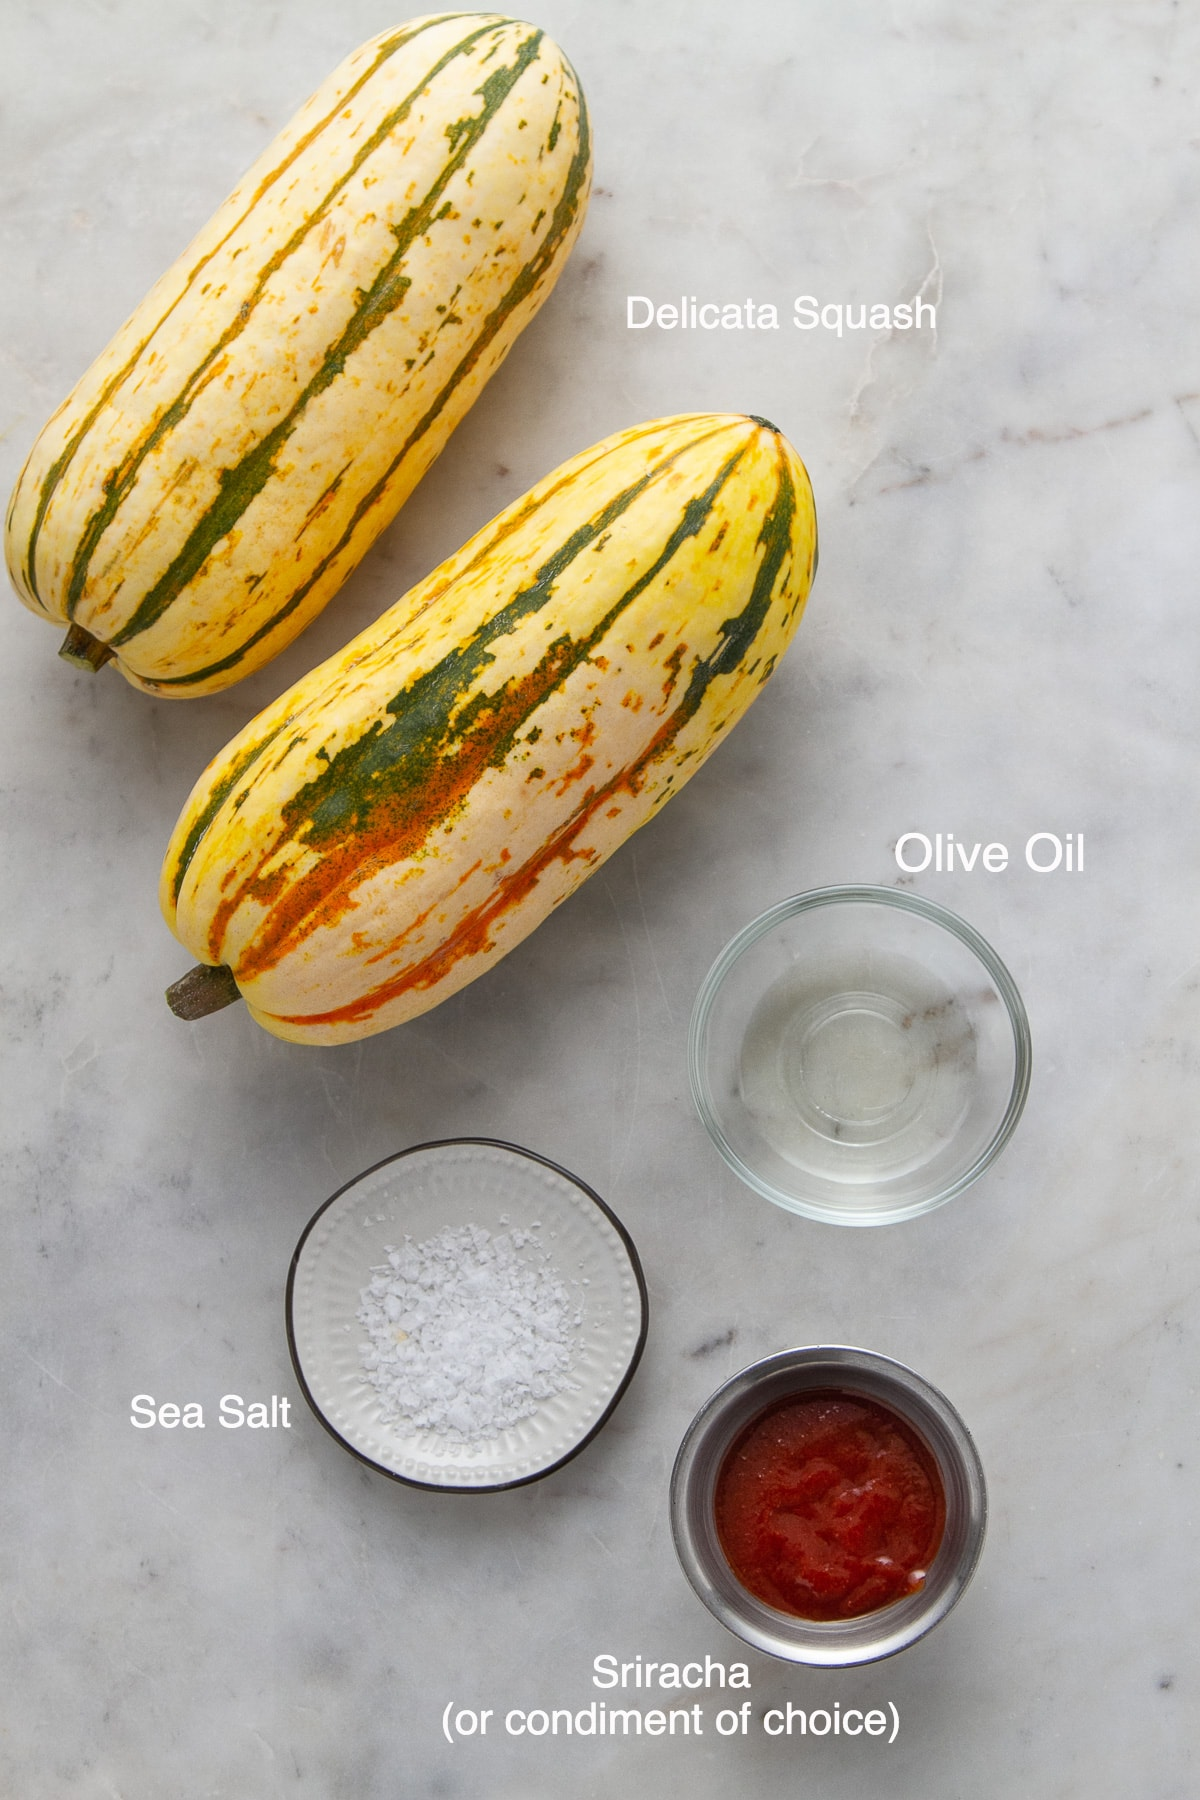 top down view of ingredient needed to make delicata squash fries.